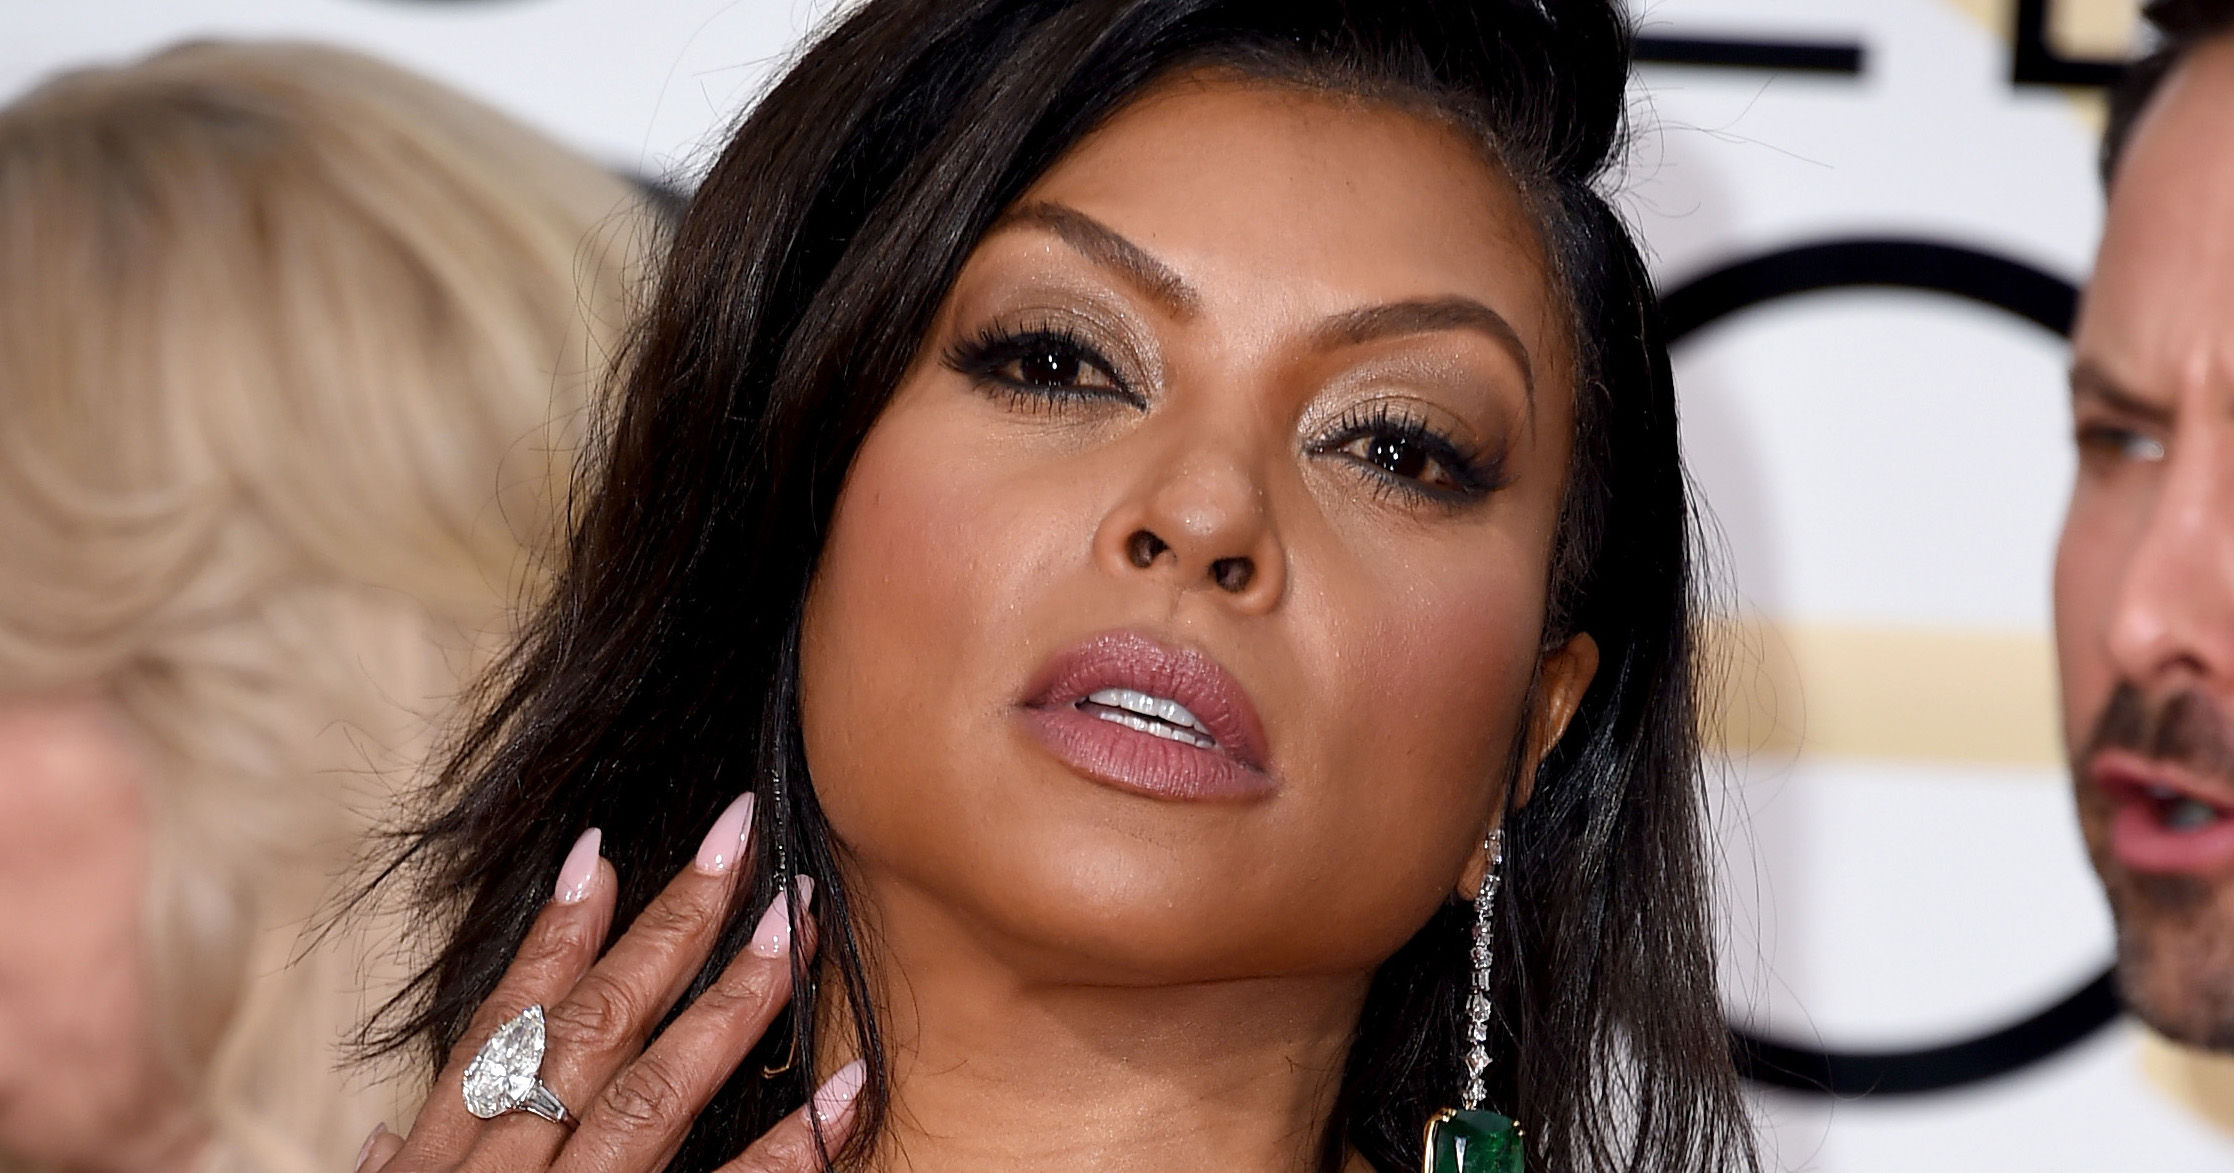 Taraji P. Henson attends the 73rd Annual Golden Globe Awards on Jan. 10, 2016 in Beverly Hills.